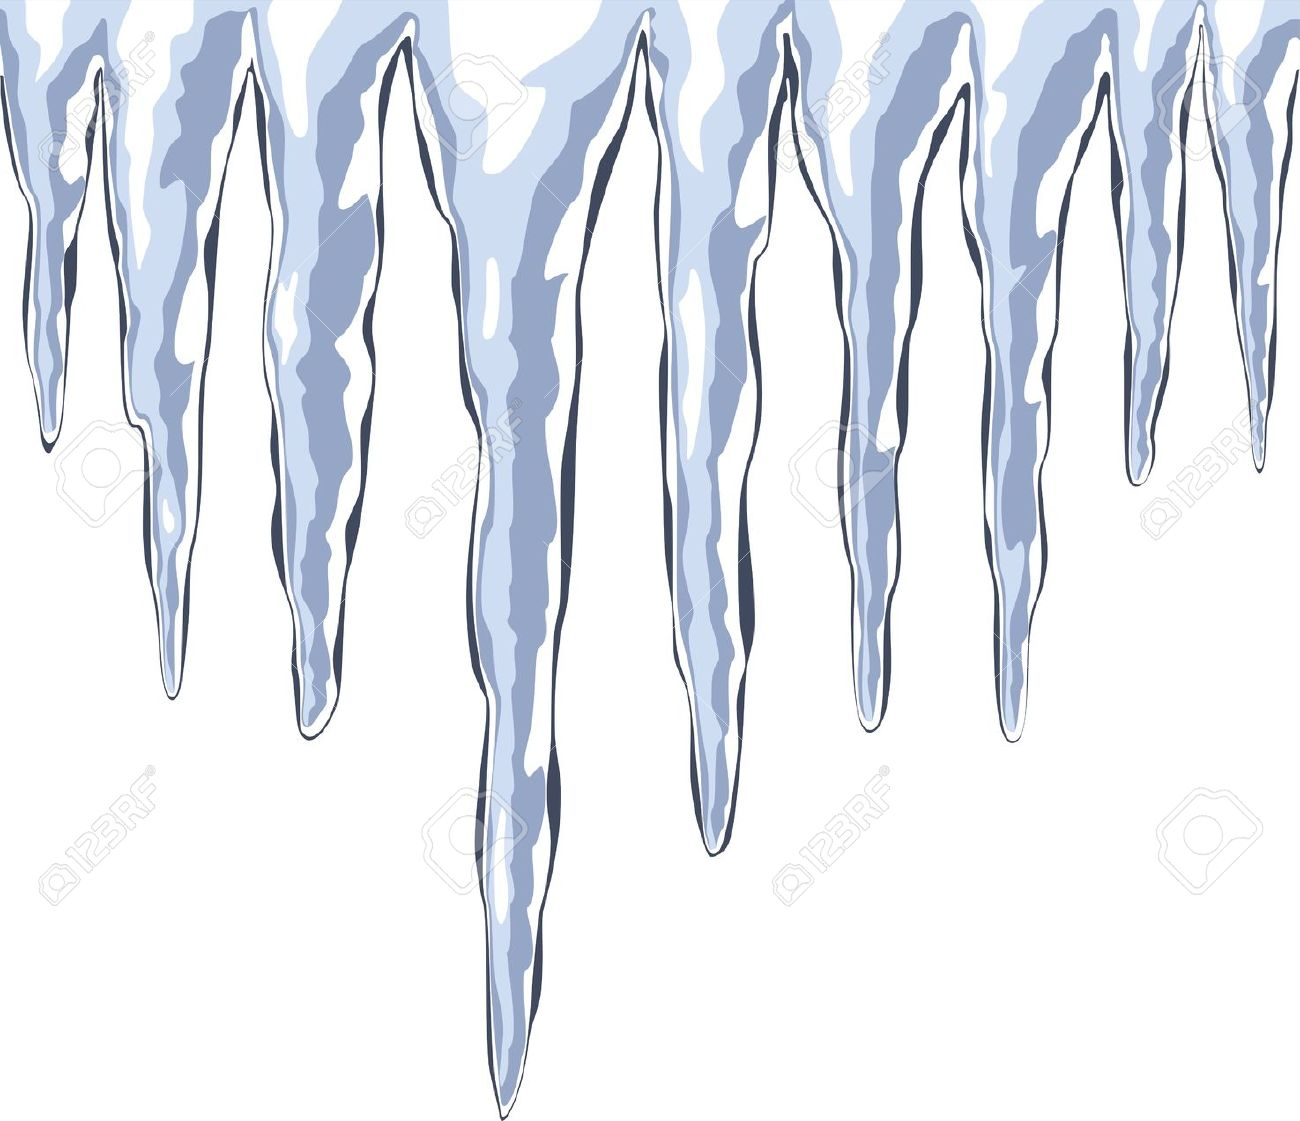 Ice cycles clipart.